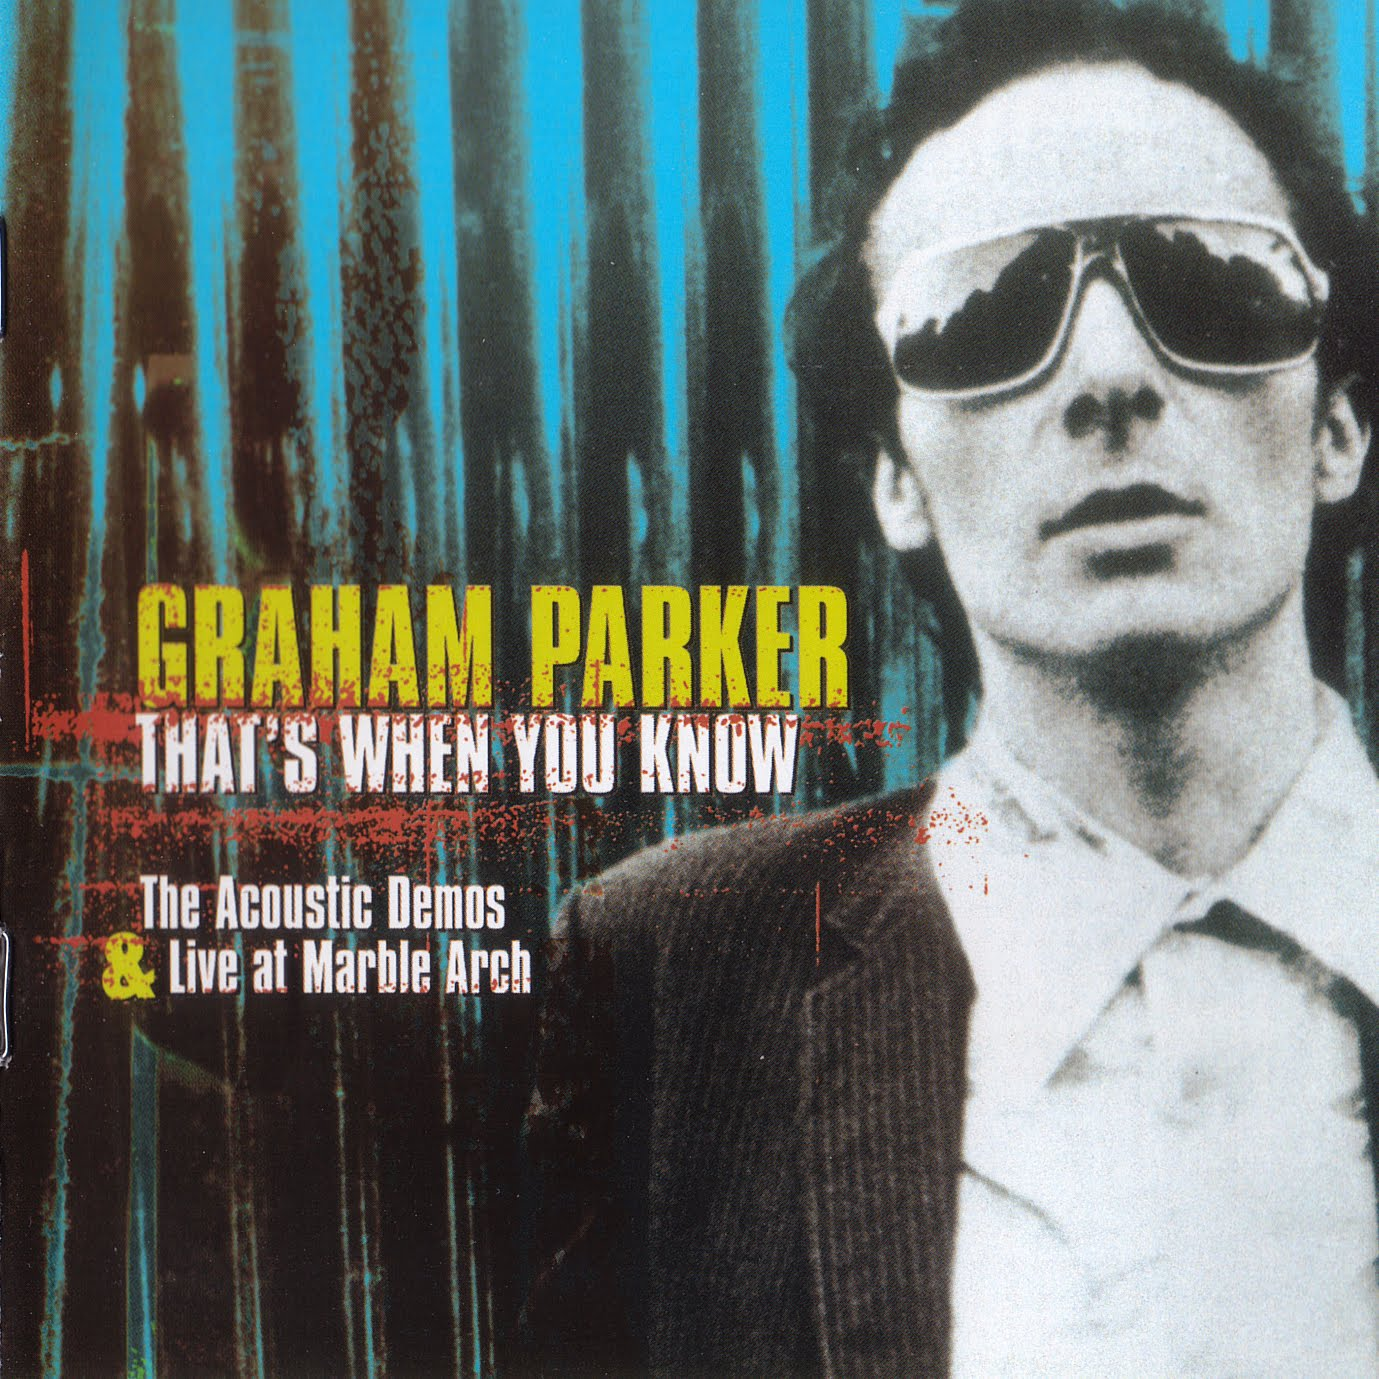 [graham_parker_-_that's_when_you_know_-_front3]